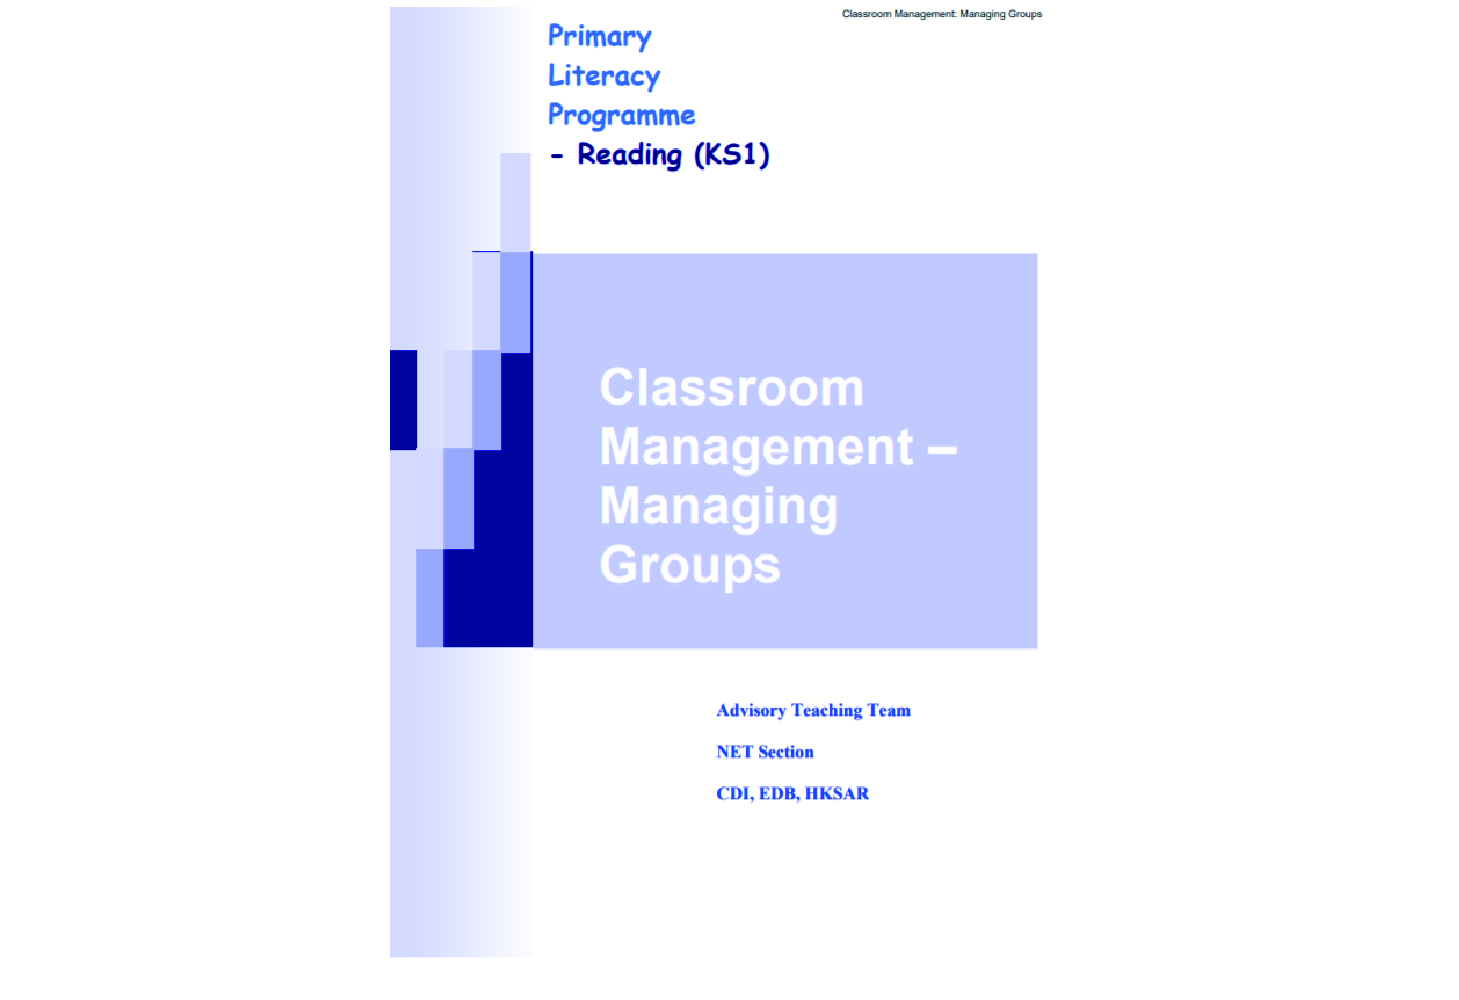 Classroom Management (Group Management Booklet and Activity)